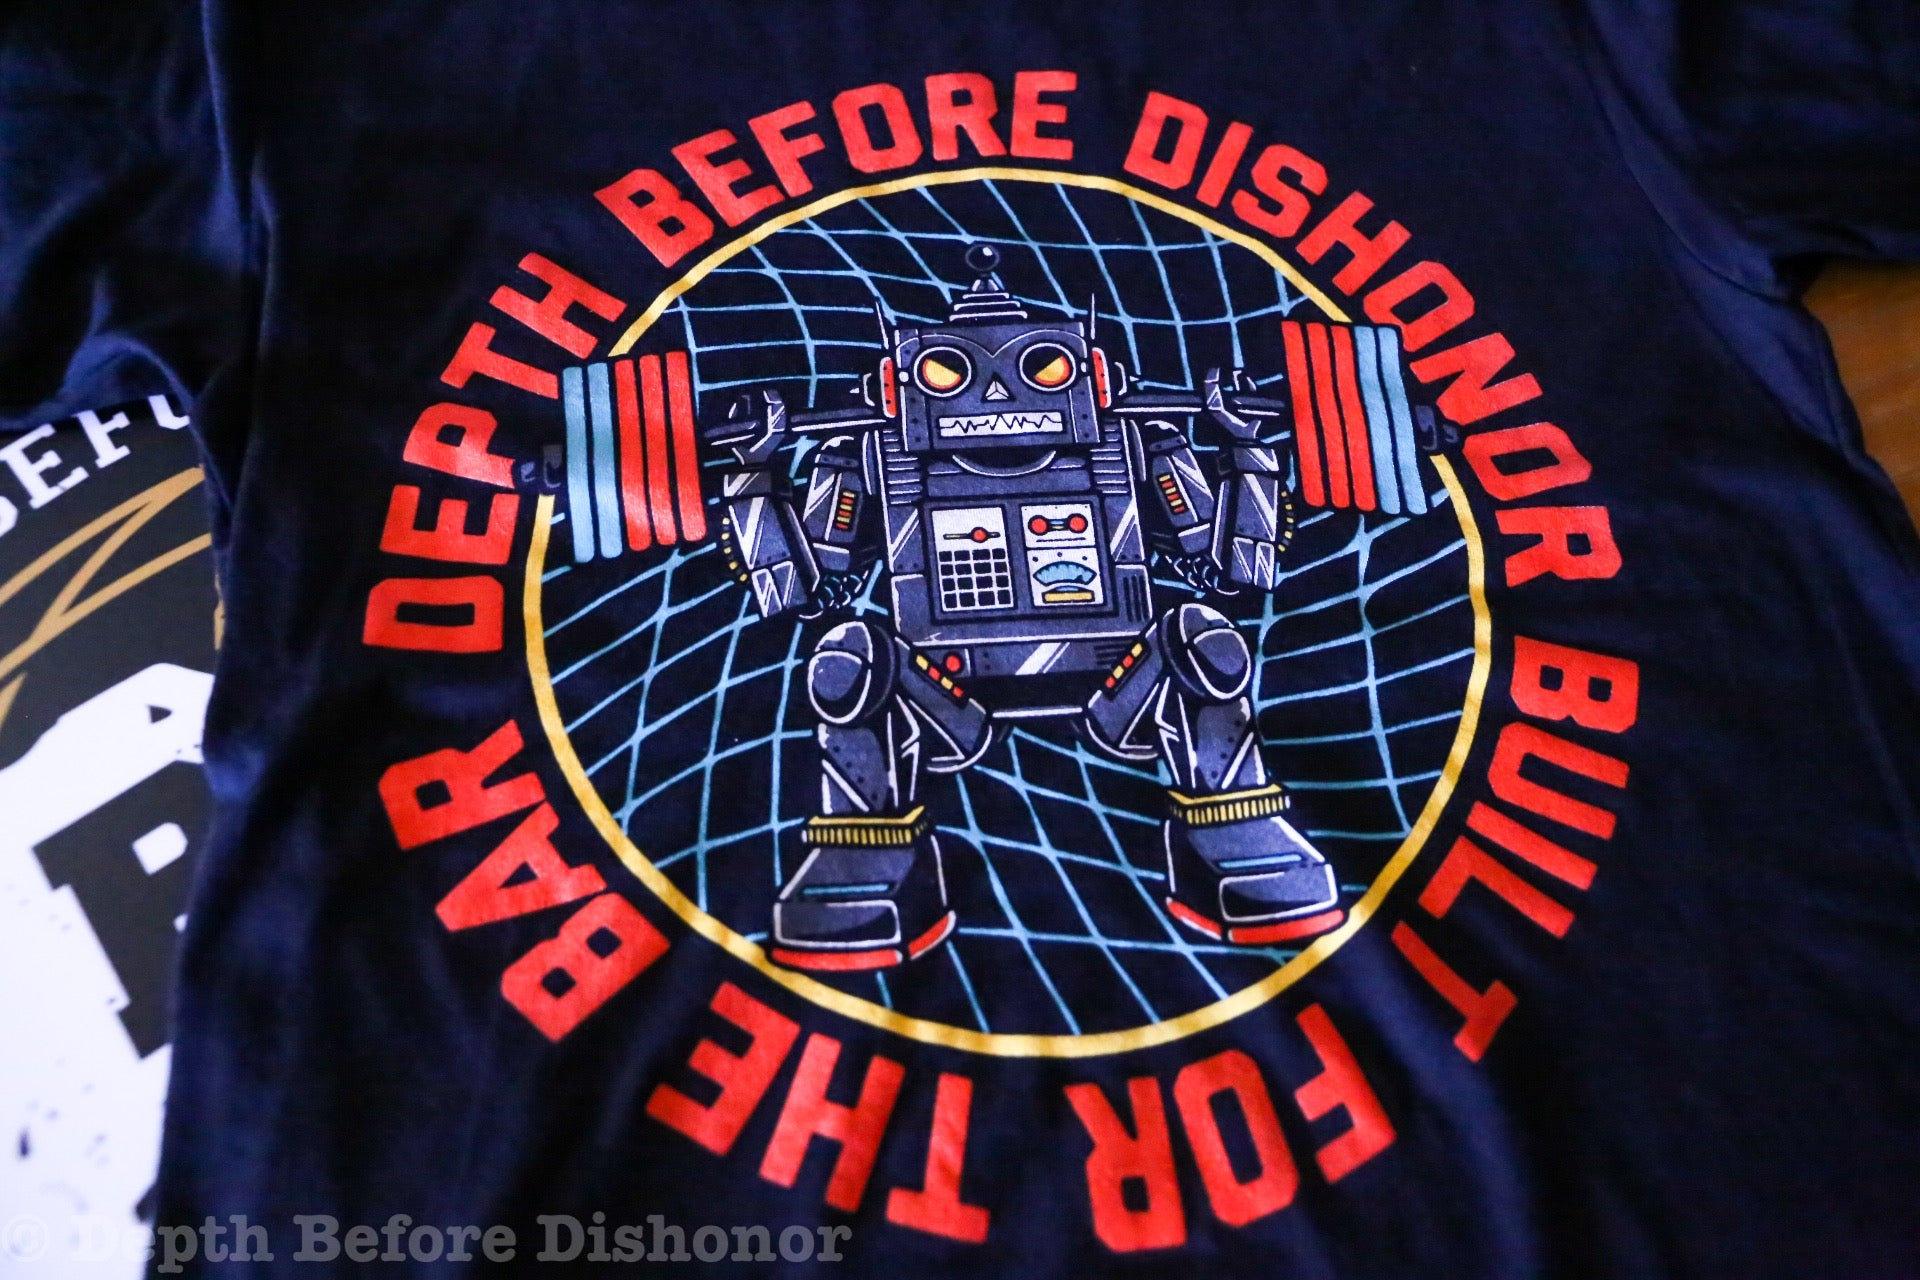 Built for the Bar) DBDS ROBO tee